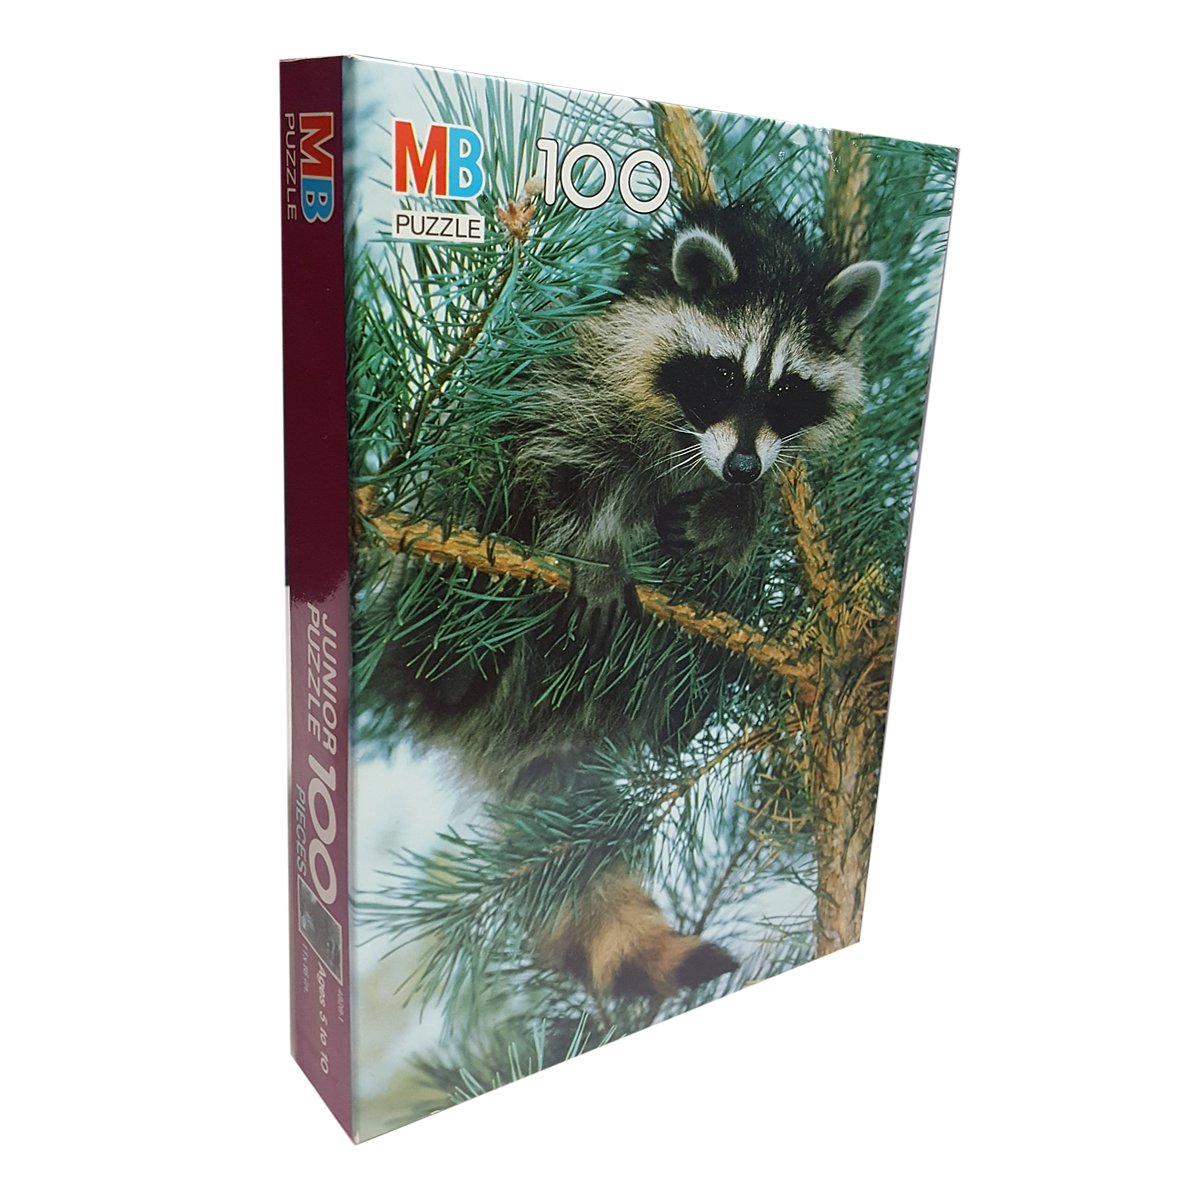 Milton Bradley 100 Piece Junior Jigsaw Puzzle Raccoon Ages 5+ by Milton Bradley